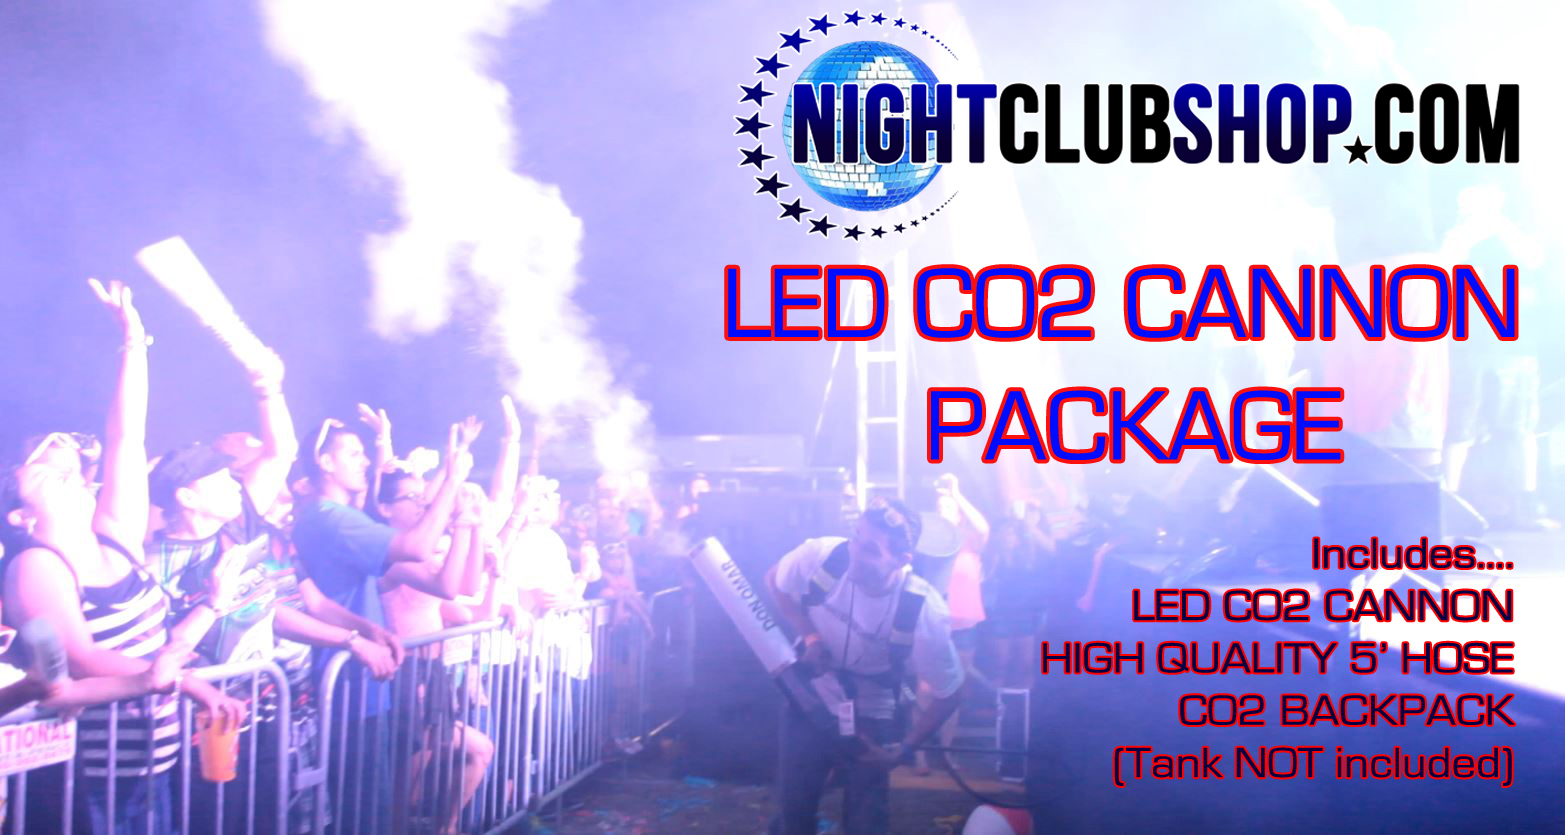 led-co2-cannon-cryo-pack.jpg